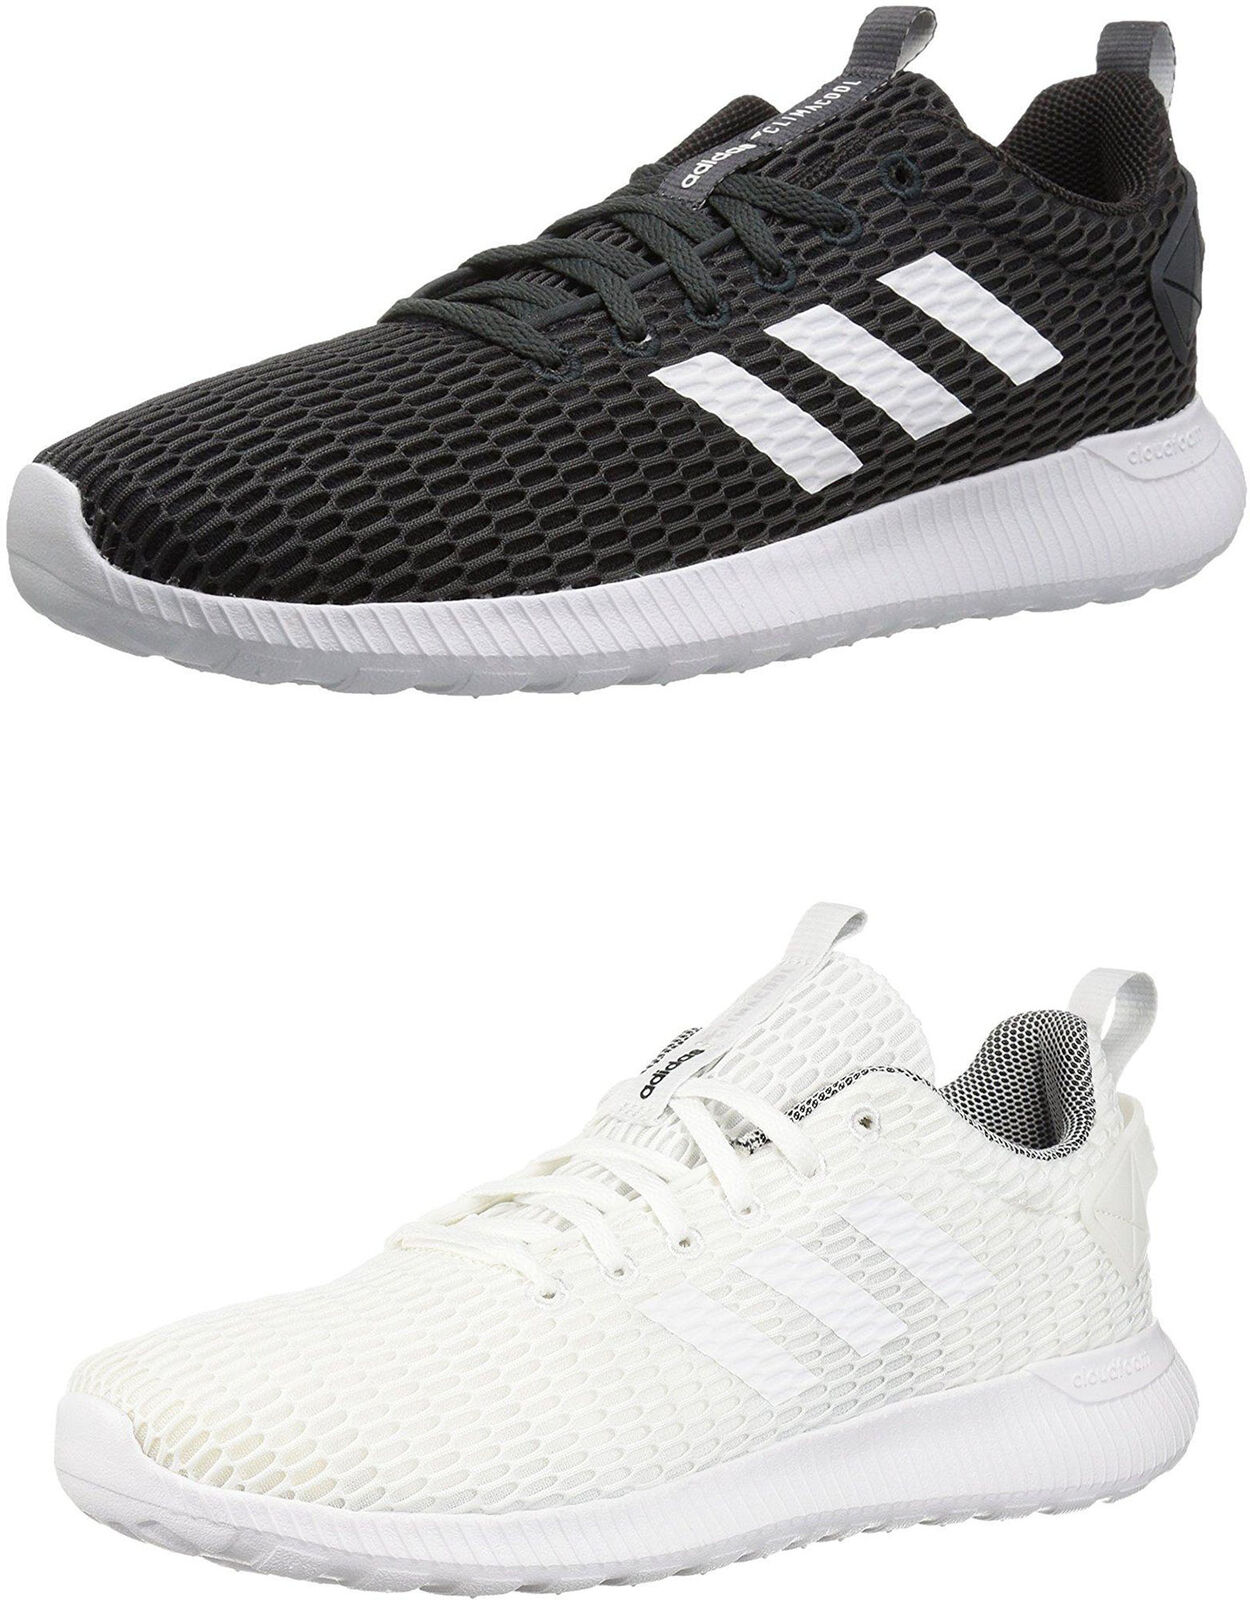 the latest a68e9 74d2c Details about adidas Neo Men's CloudFoam Lite Racer ClimaCool Shoes, 2  Colors